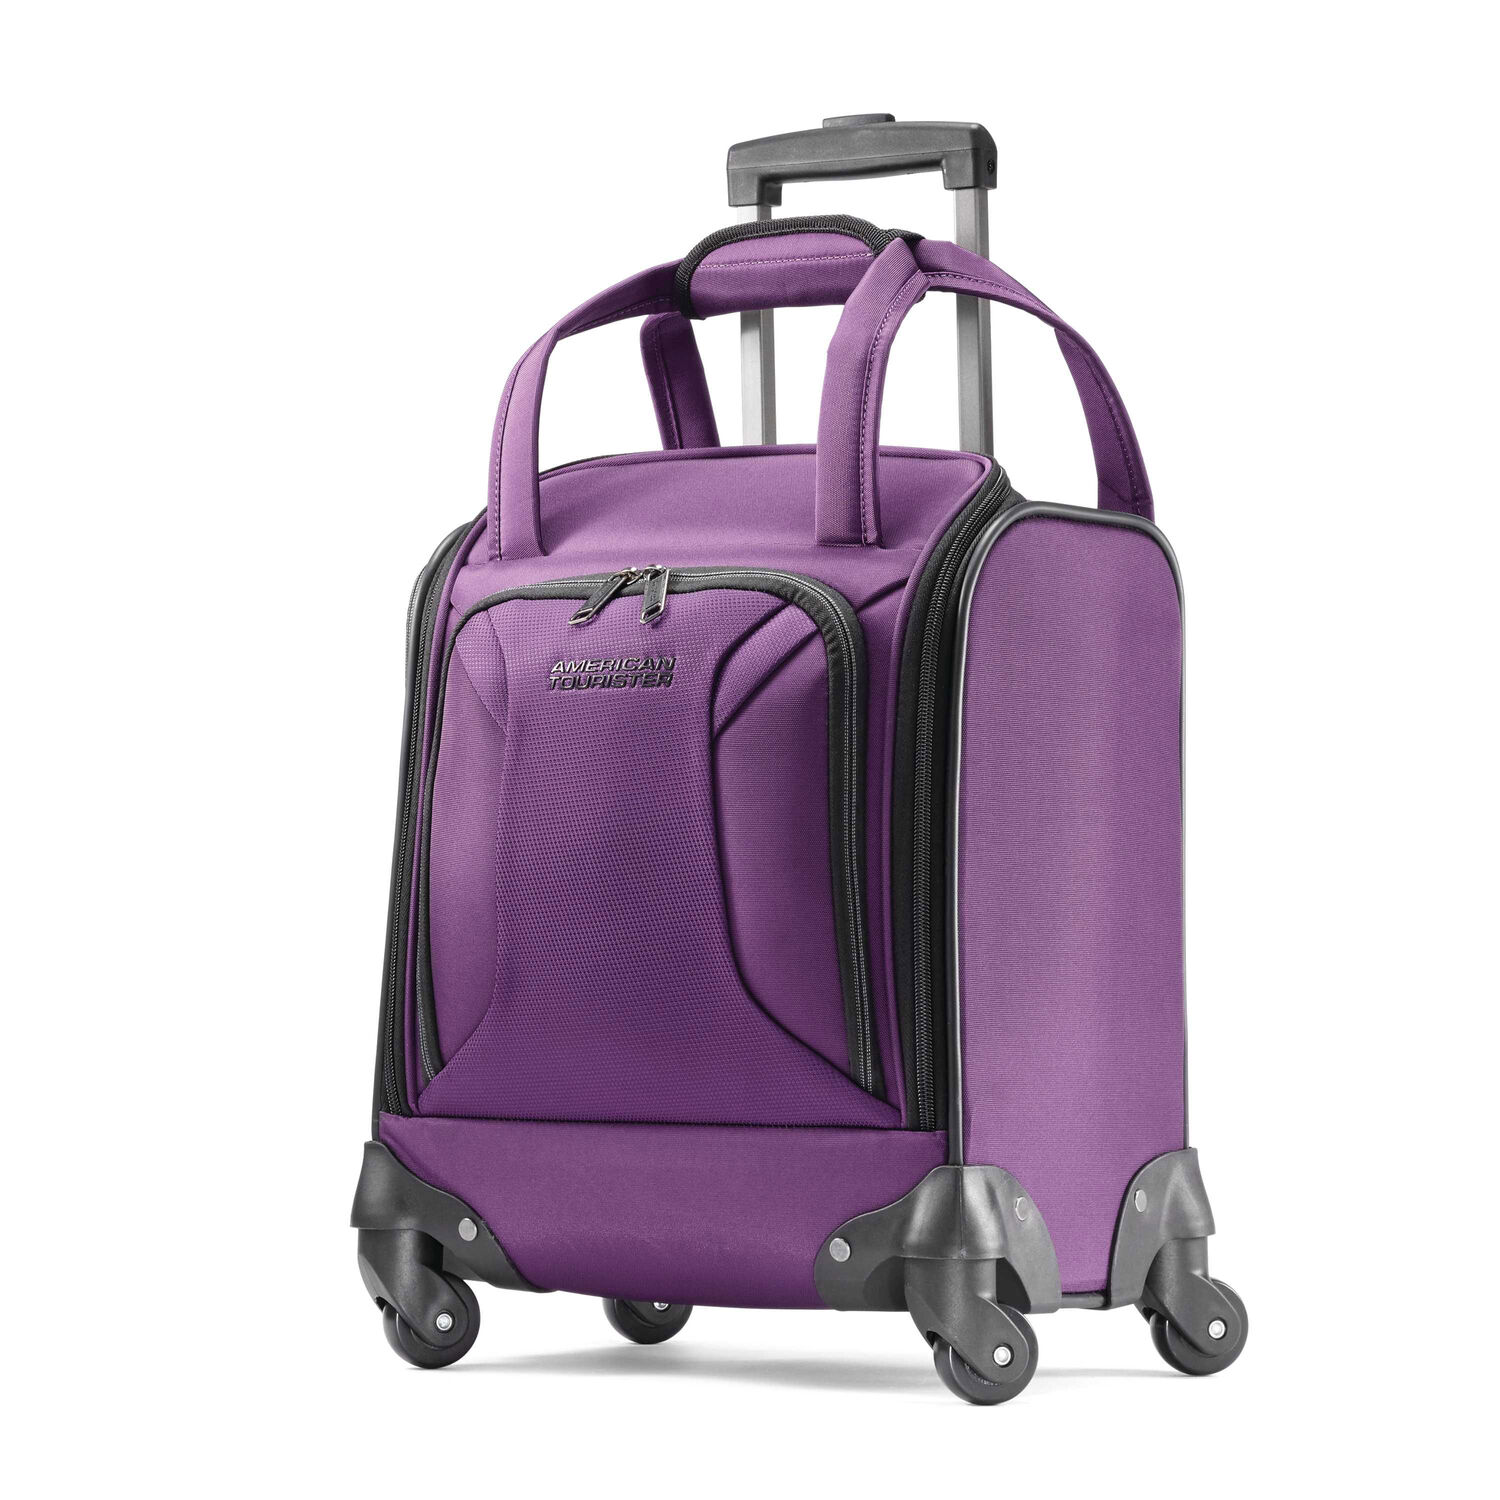 9b38f08e62 American Tourister Zoom Underseater Spinner Tote in the color Purple.